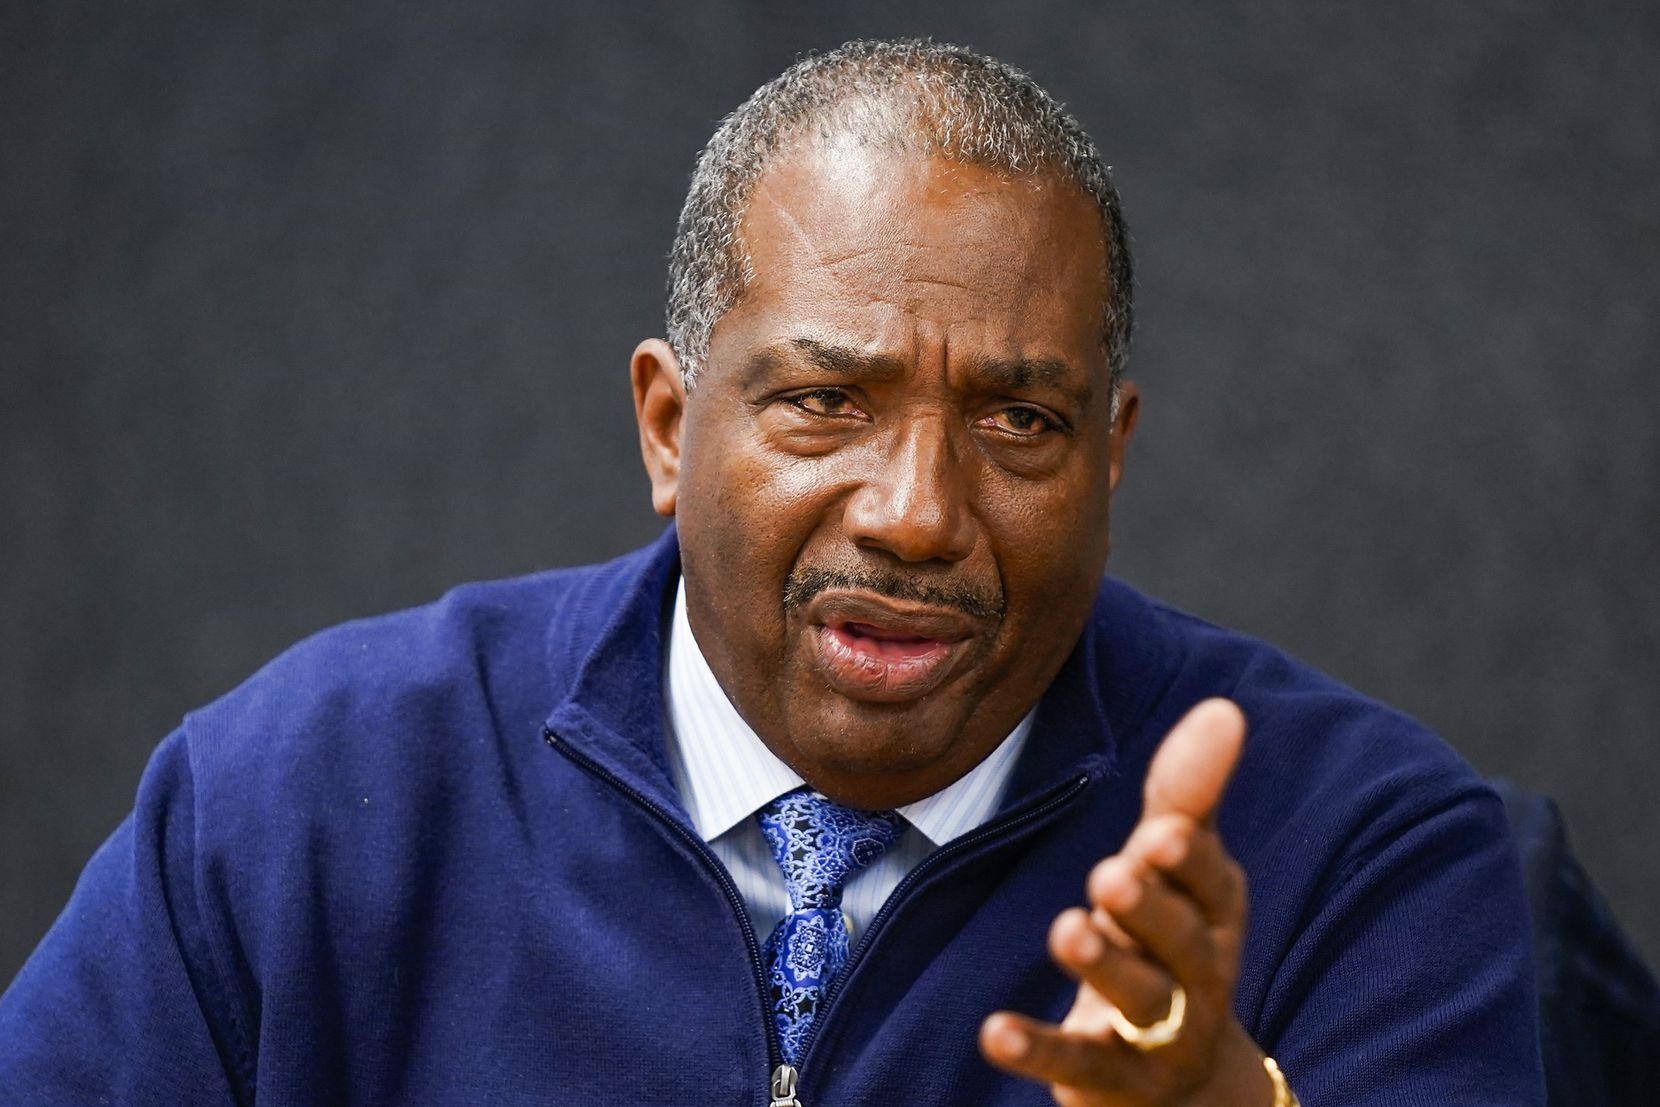 Democratic senate candidate state Sen. Royce West D-Dallas during a meeting with the The Dallas Morning News editorial board on Wednesday, Feb. 5, 2020, in Dallas. (Smiley N. Pool/The Dallas Morning News)